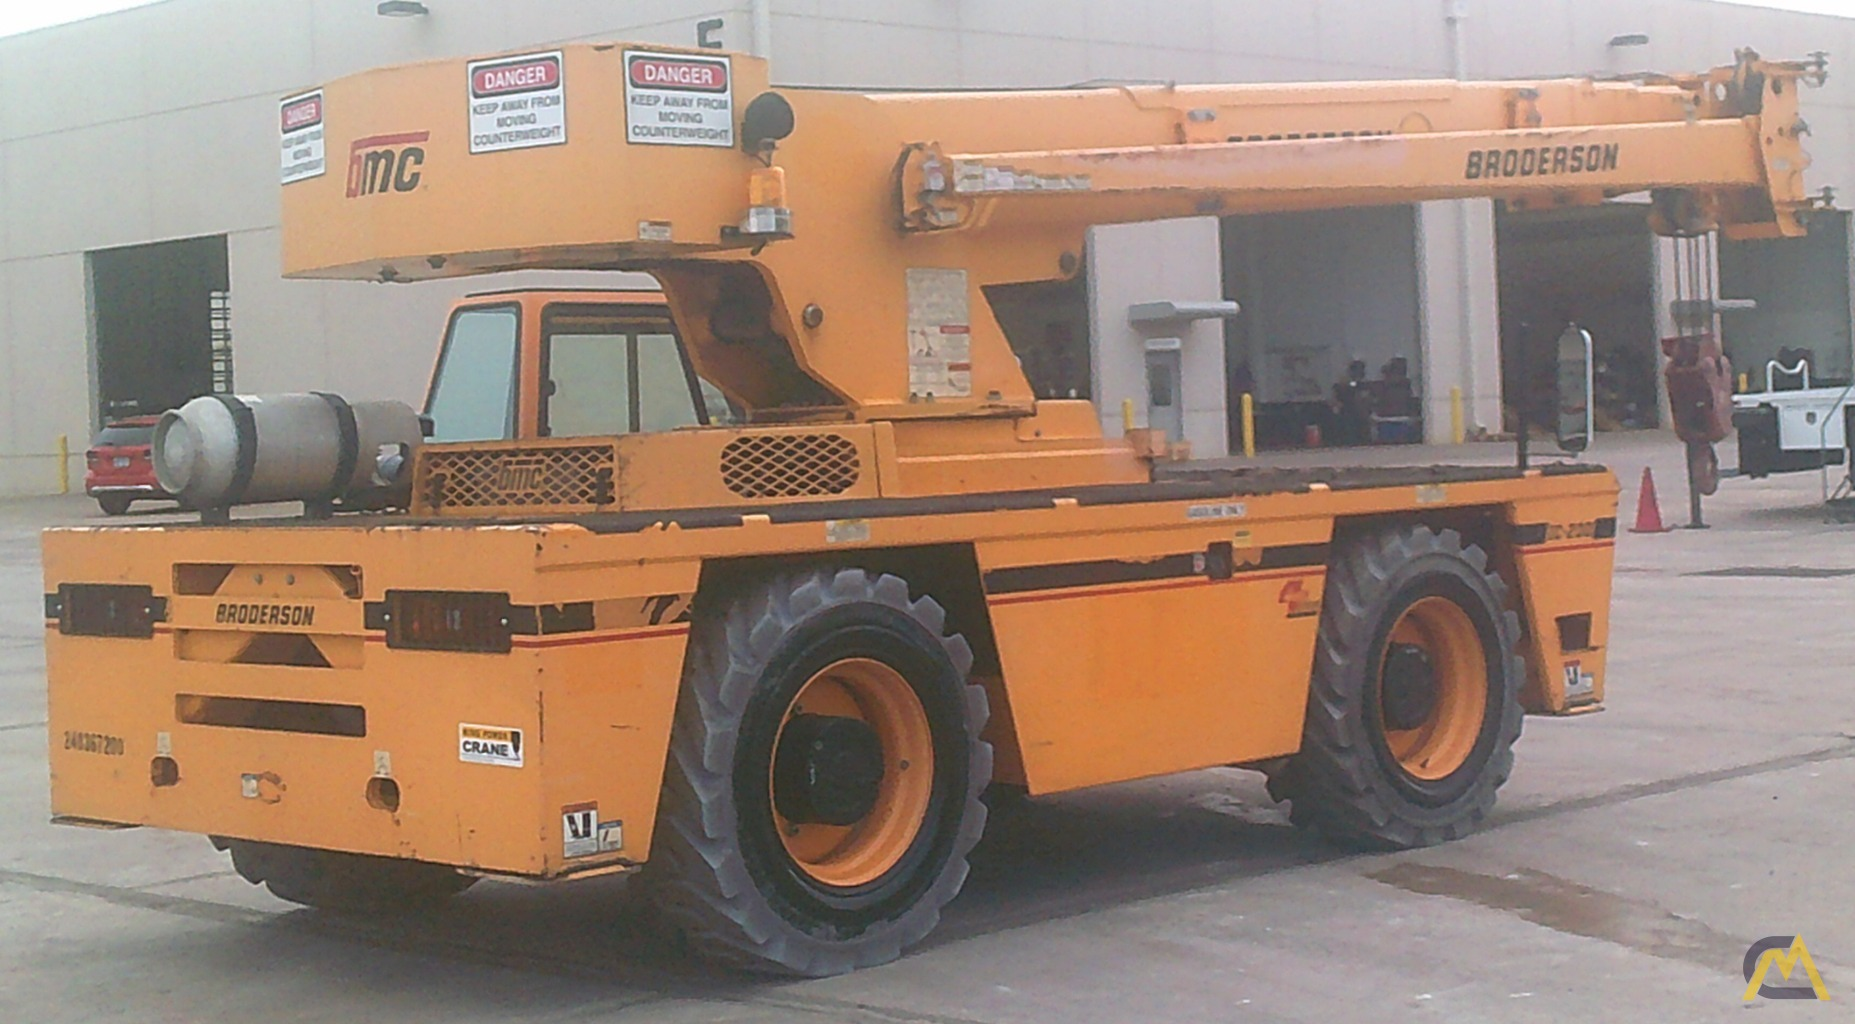 Broderson IC-200-3H 15-Ton Industrial Carry Deck Crane 1